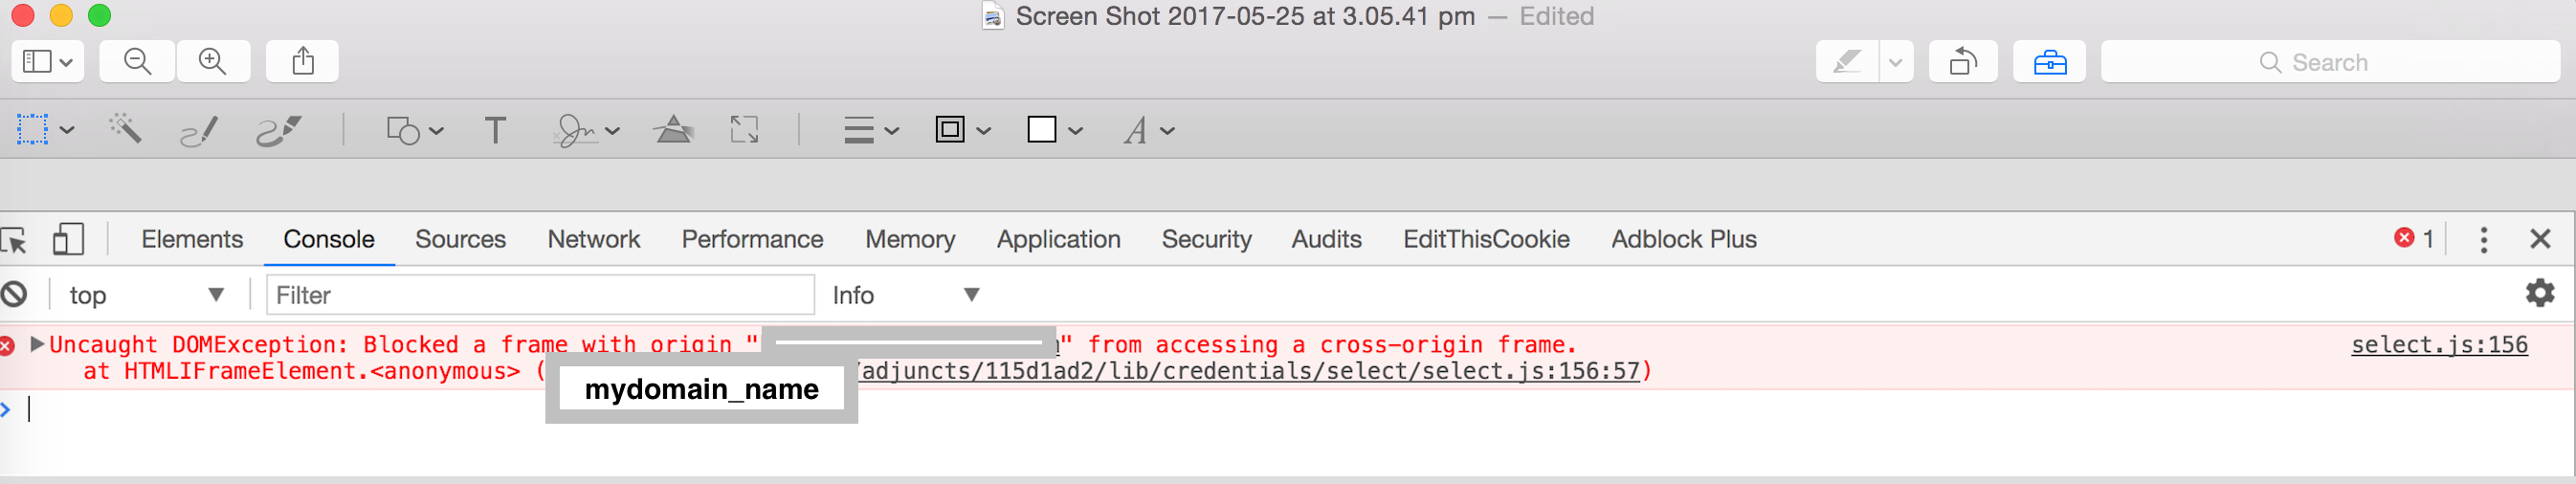 JENKINS-41167] credential is not saving the credentials (iframe